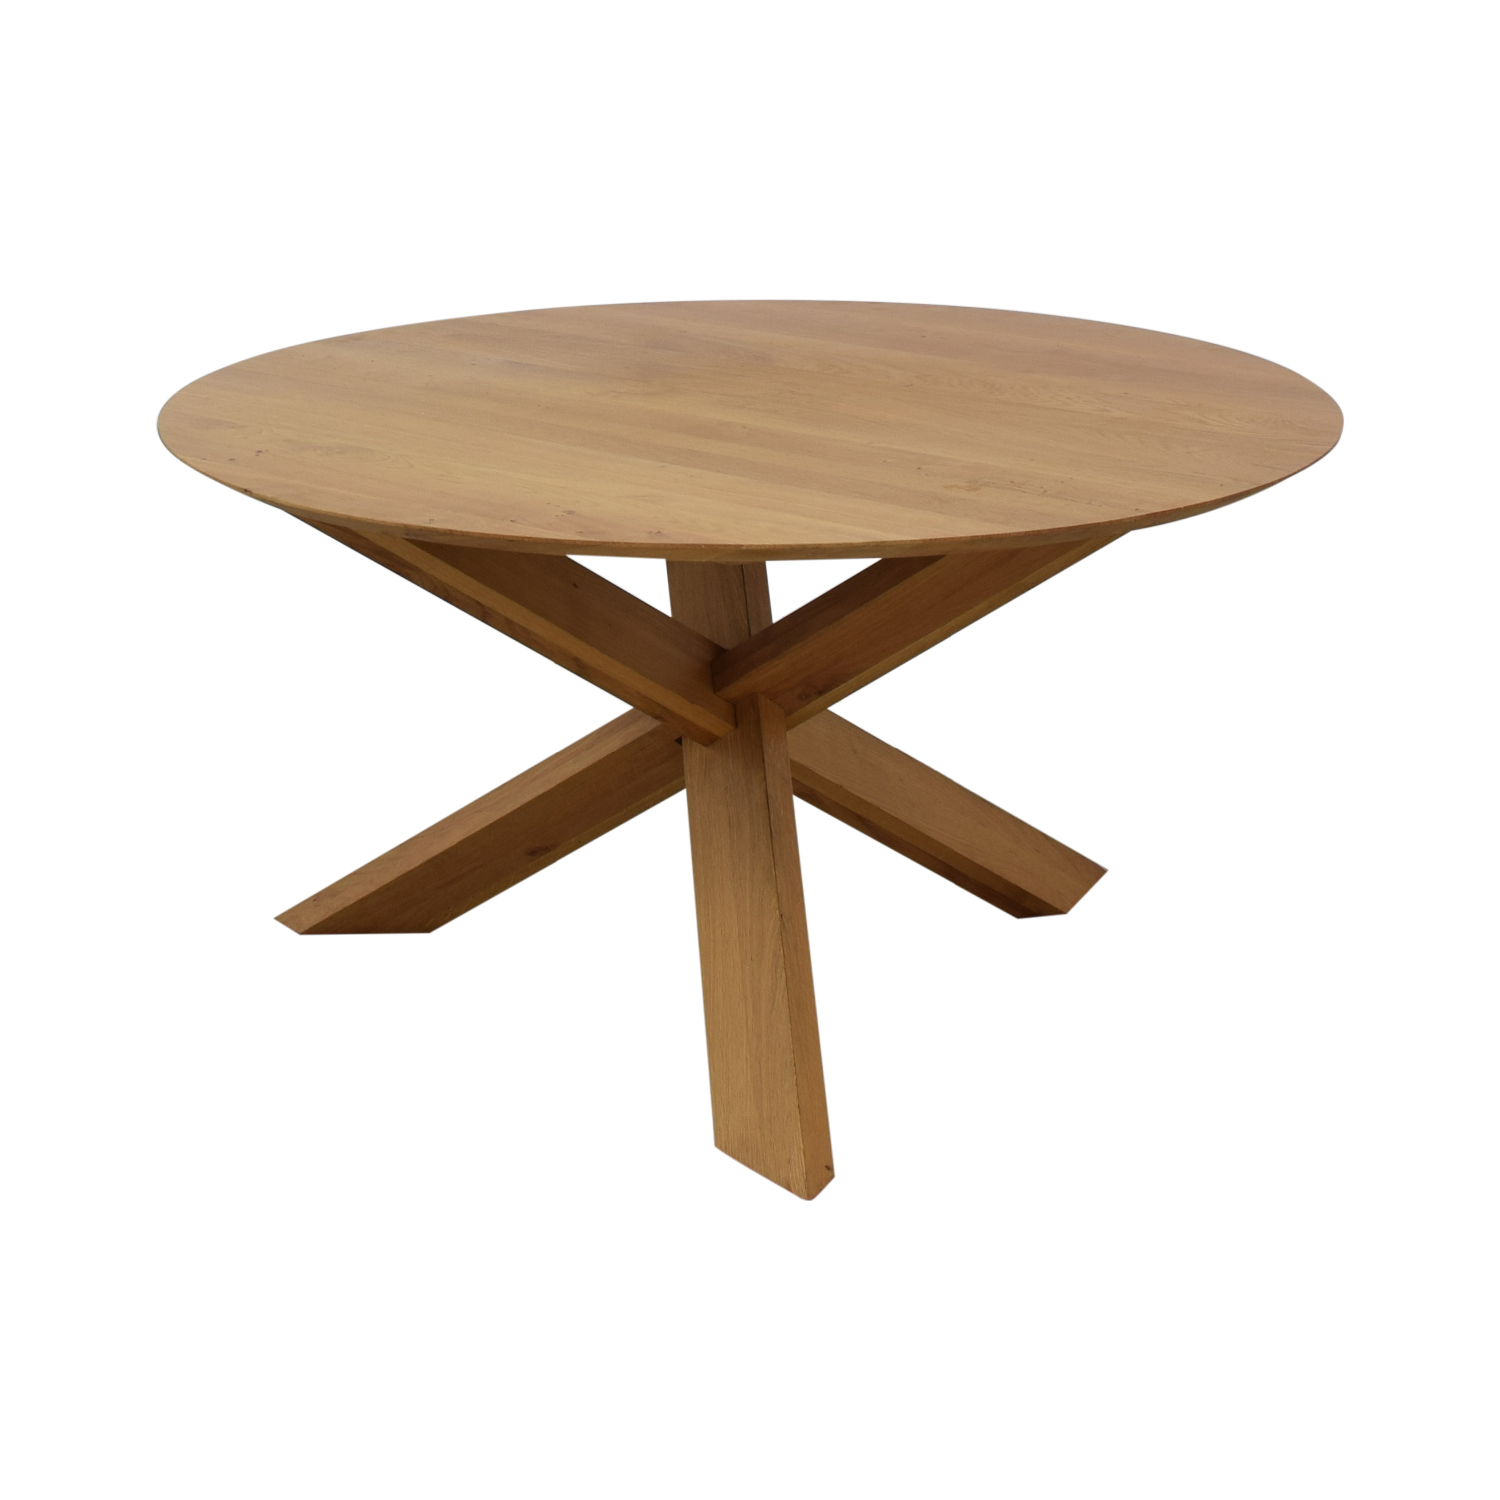 Ethnicraft Circle Dining Table Ethnicraft